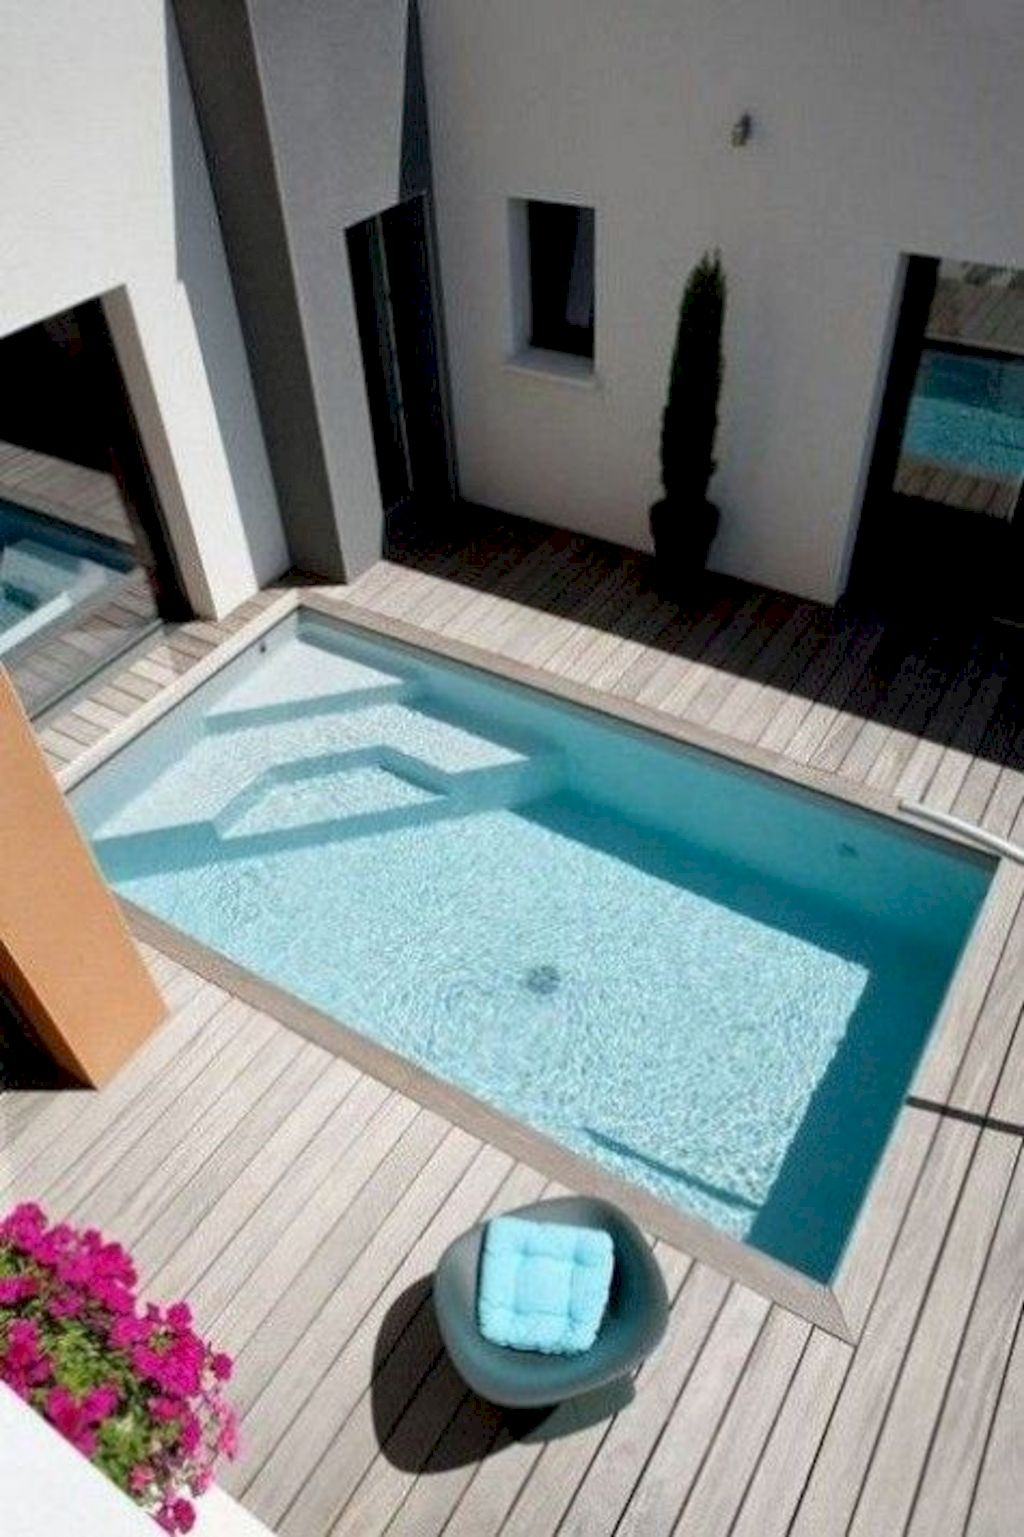 Affordable rectangular pool designs built in small areas that give a lavish look getting along with beautiful landscape (25)